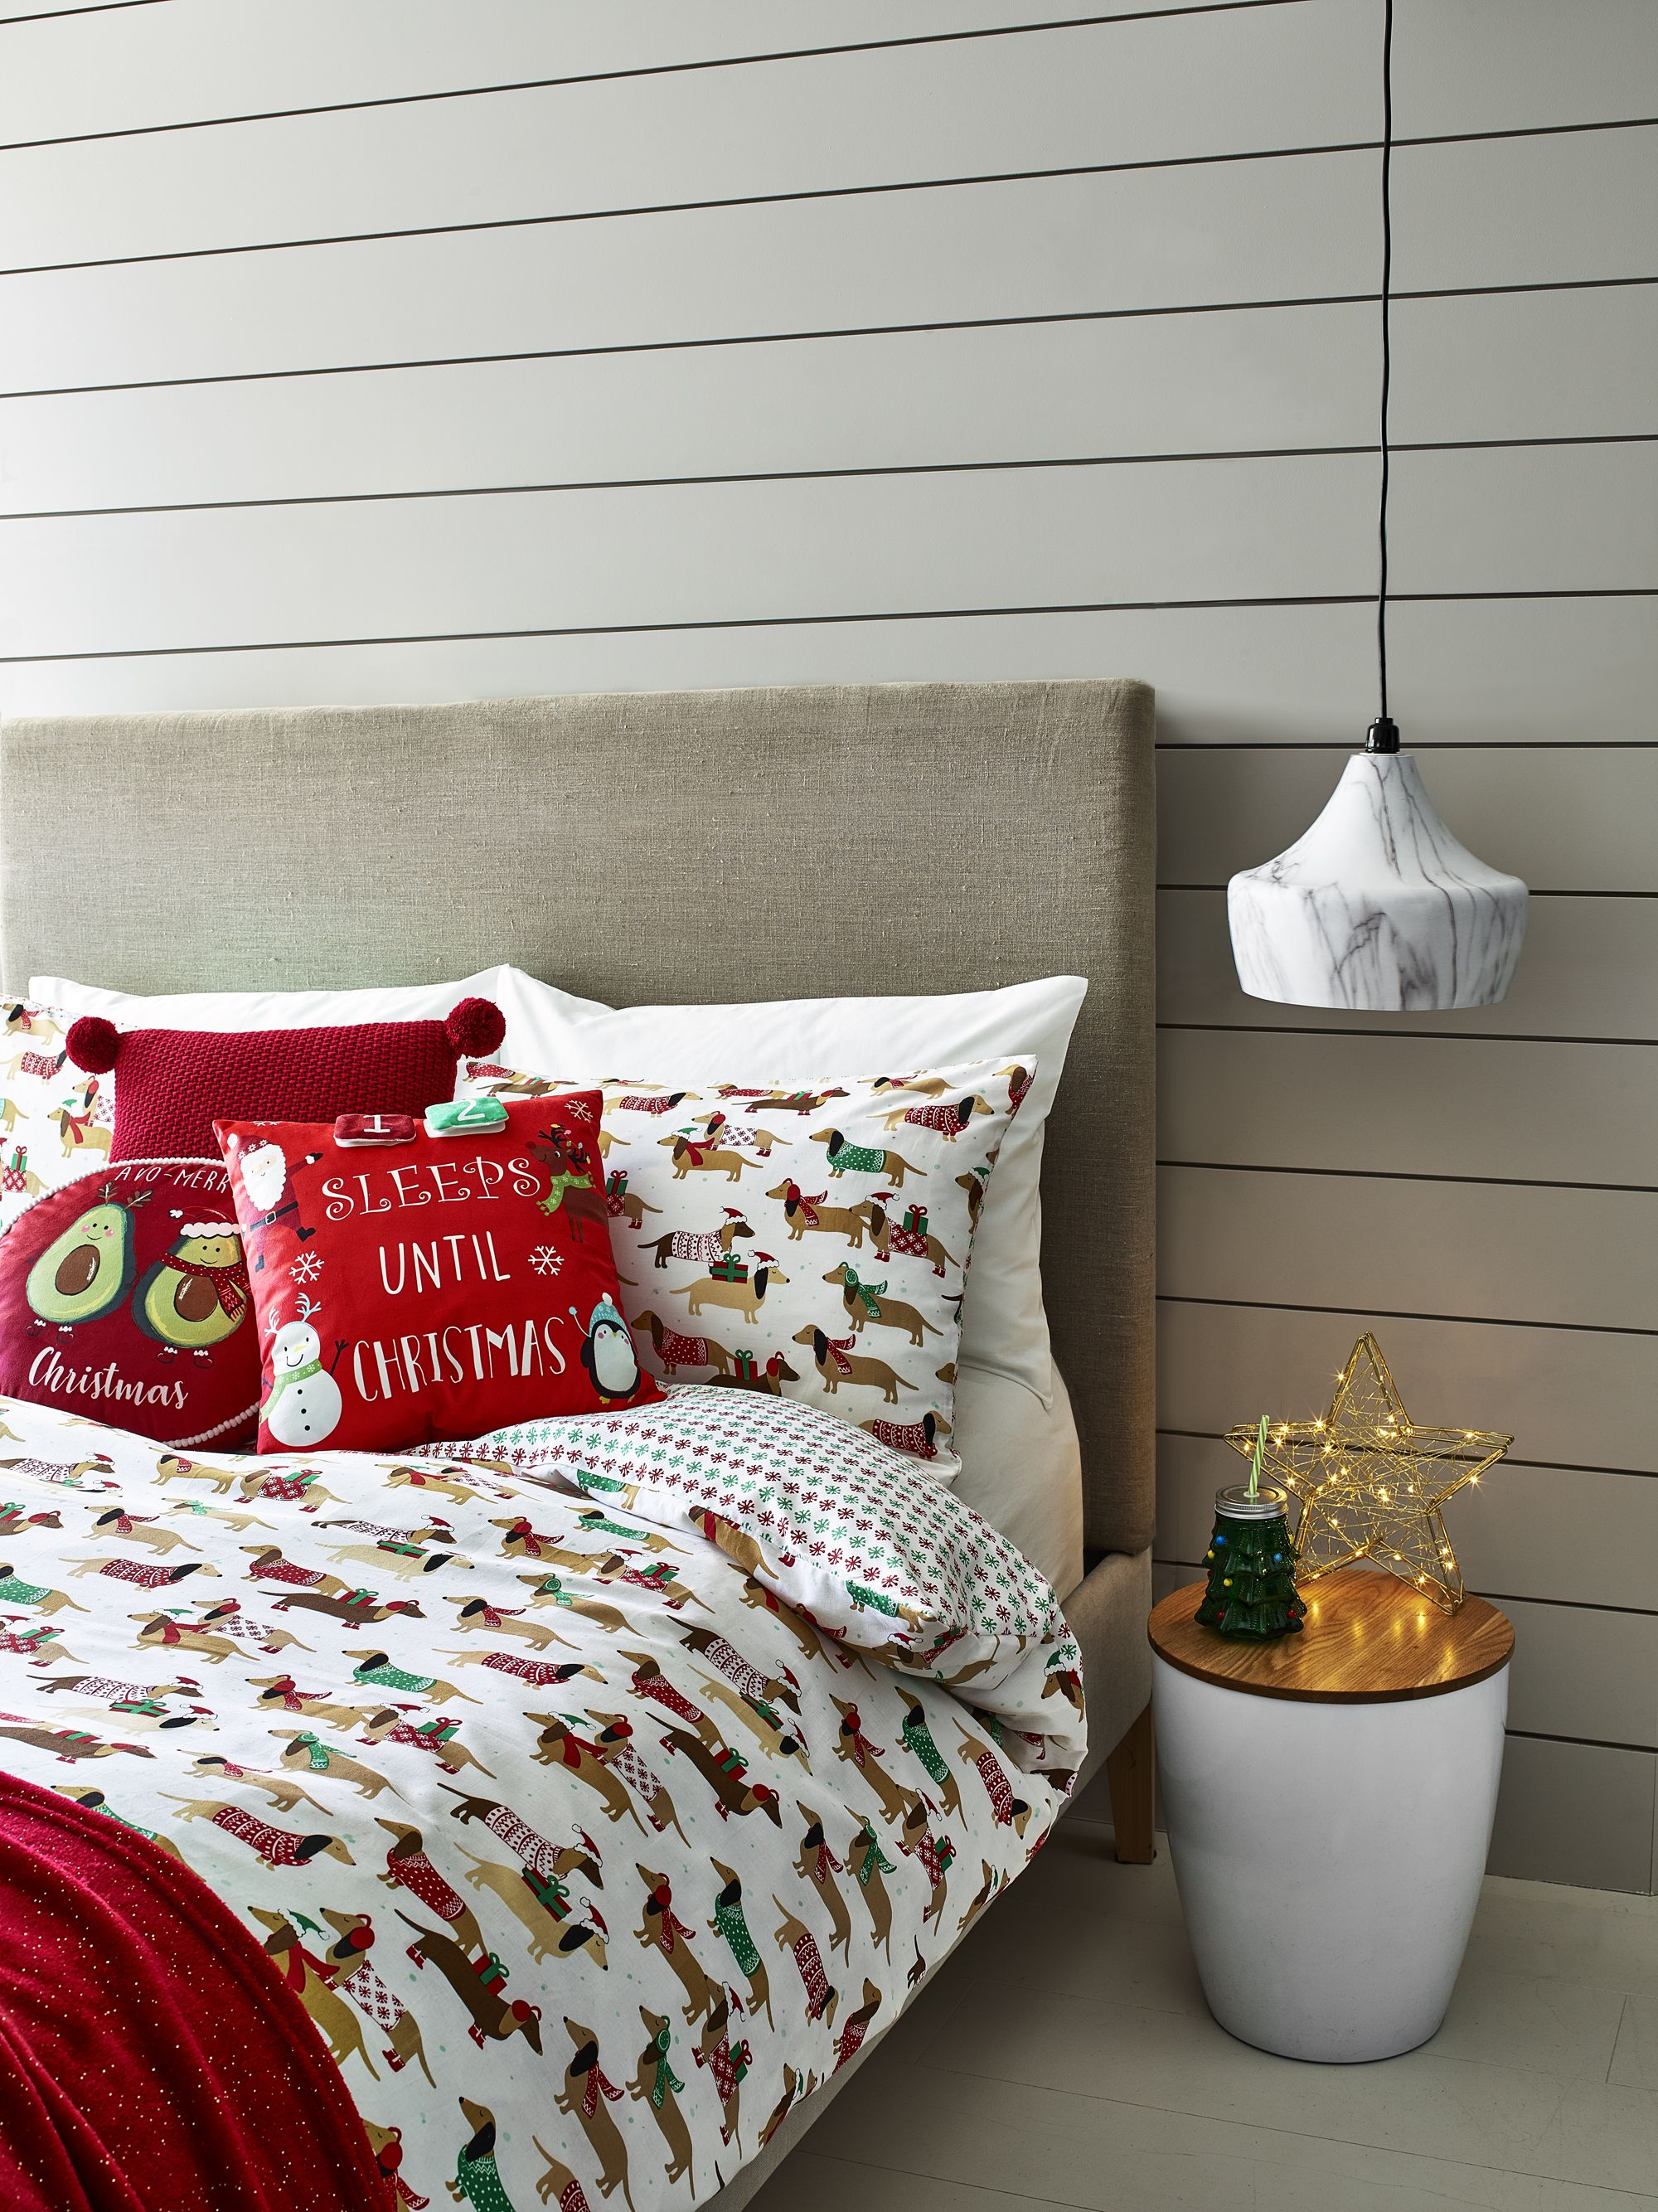 christmas bedding sets best christmas duvet sets jpg 480x640 christmas plaid bedrooms winter picturesque bedspreads